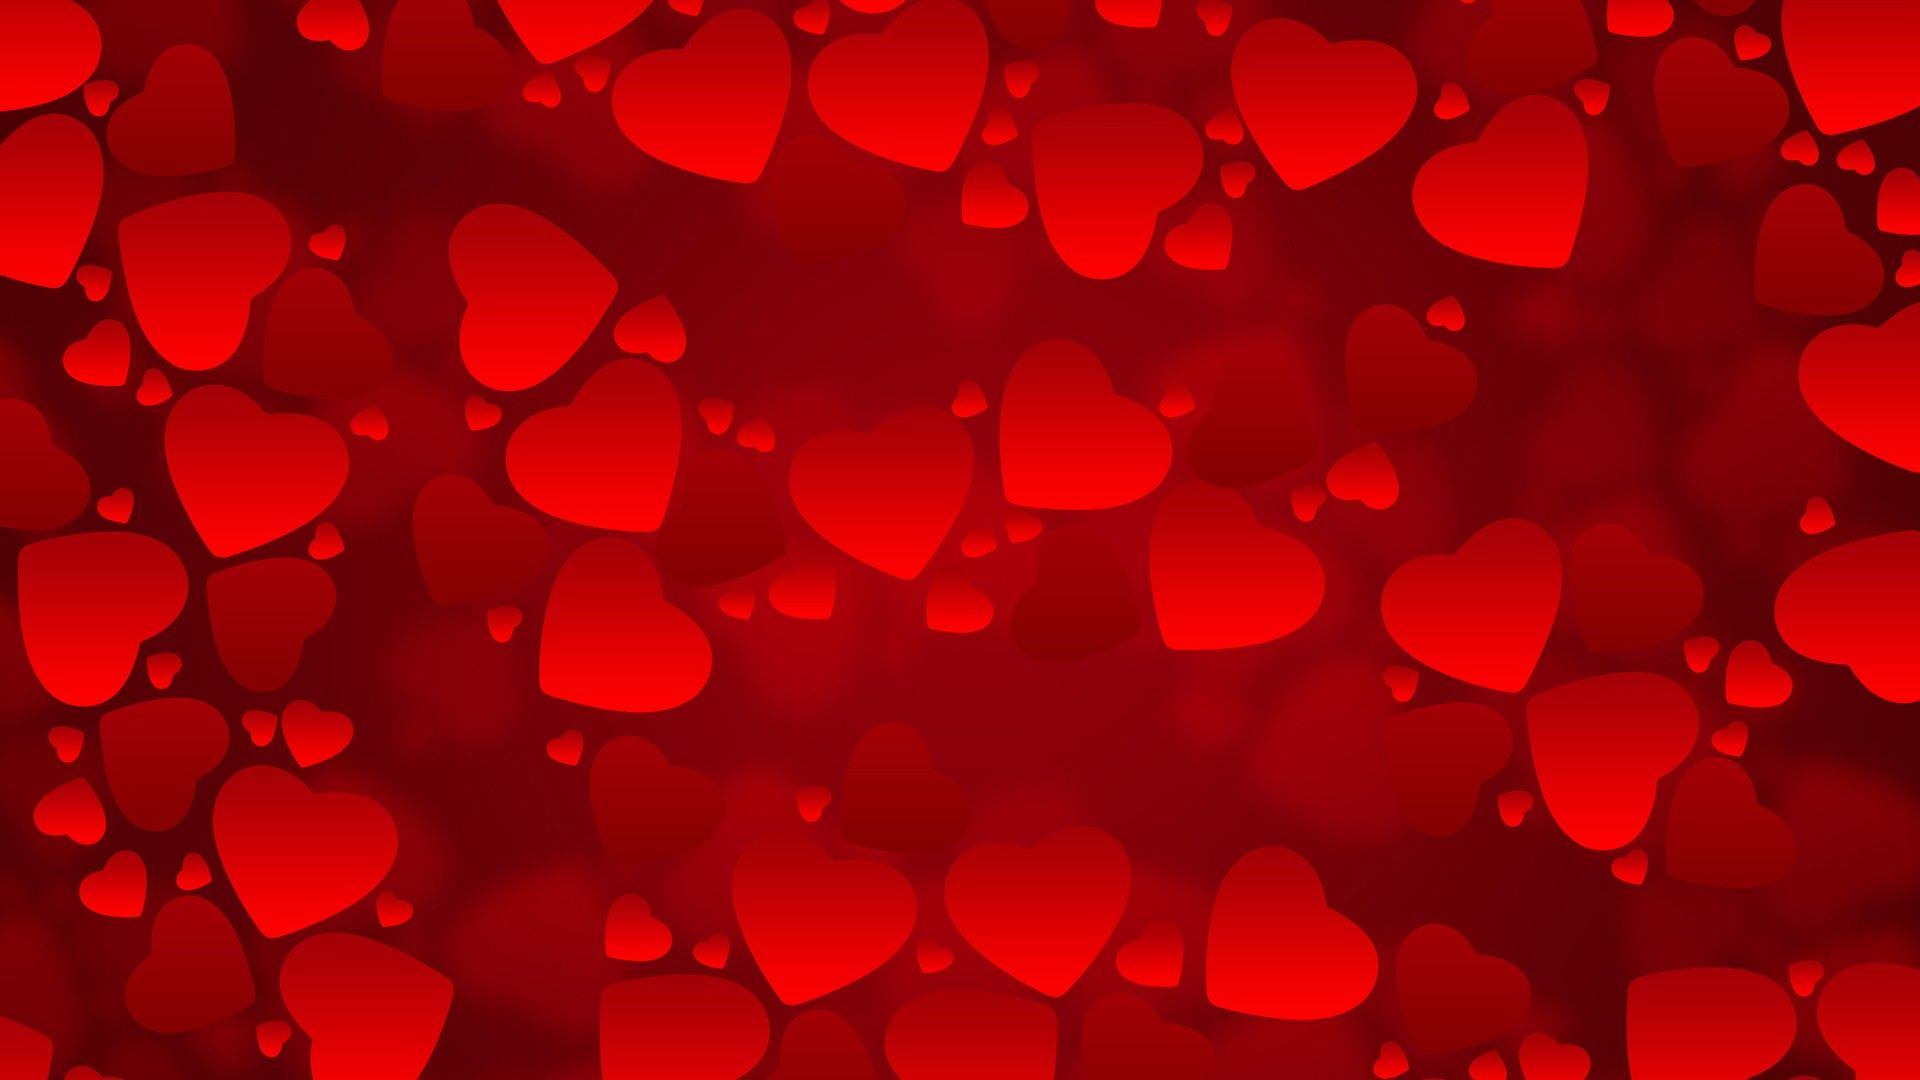 Vector Hearts 108 0p HD Widescreen Wallpapers Abstract Healthy 1920x1080